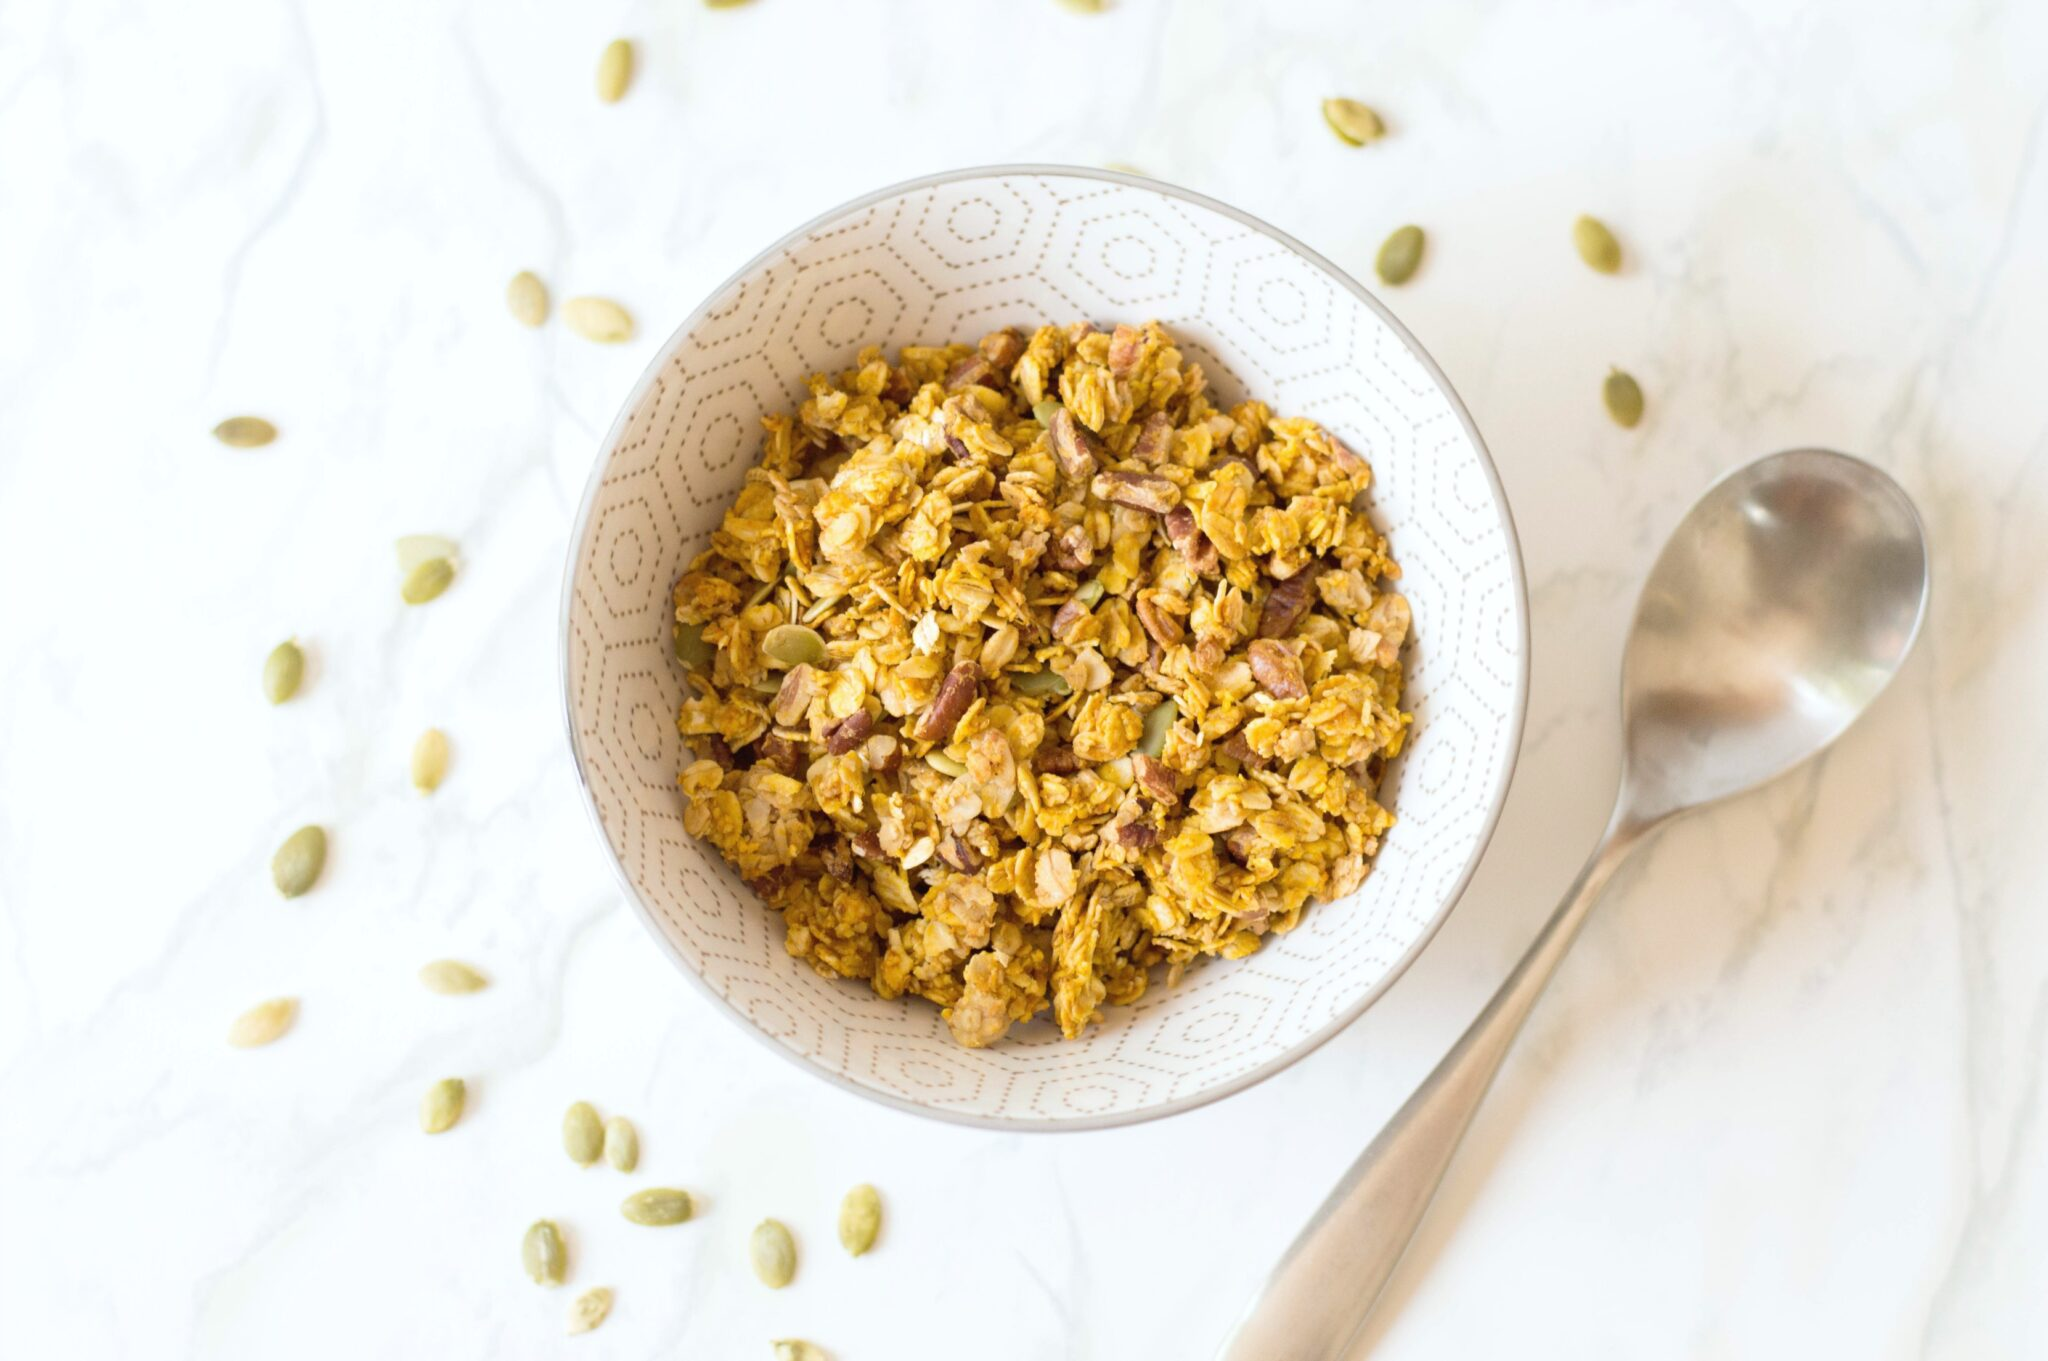 A bowl full of Pumpkin Maple Pecan granola, with a spoon.